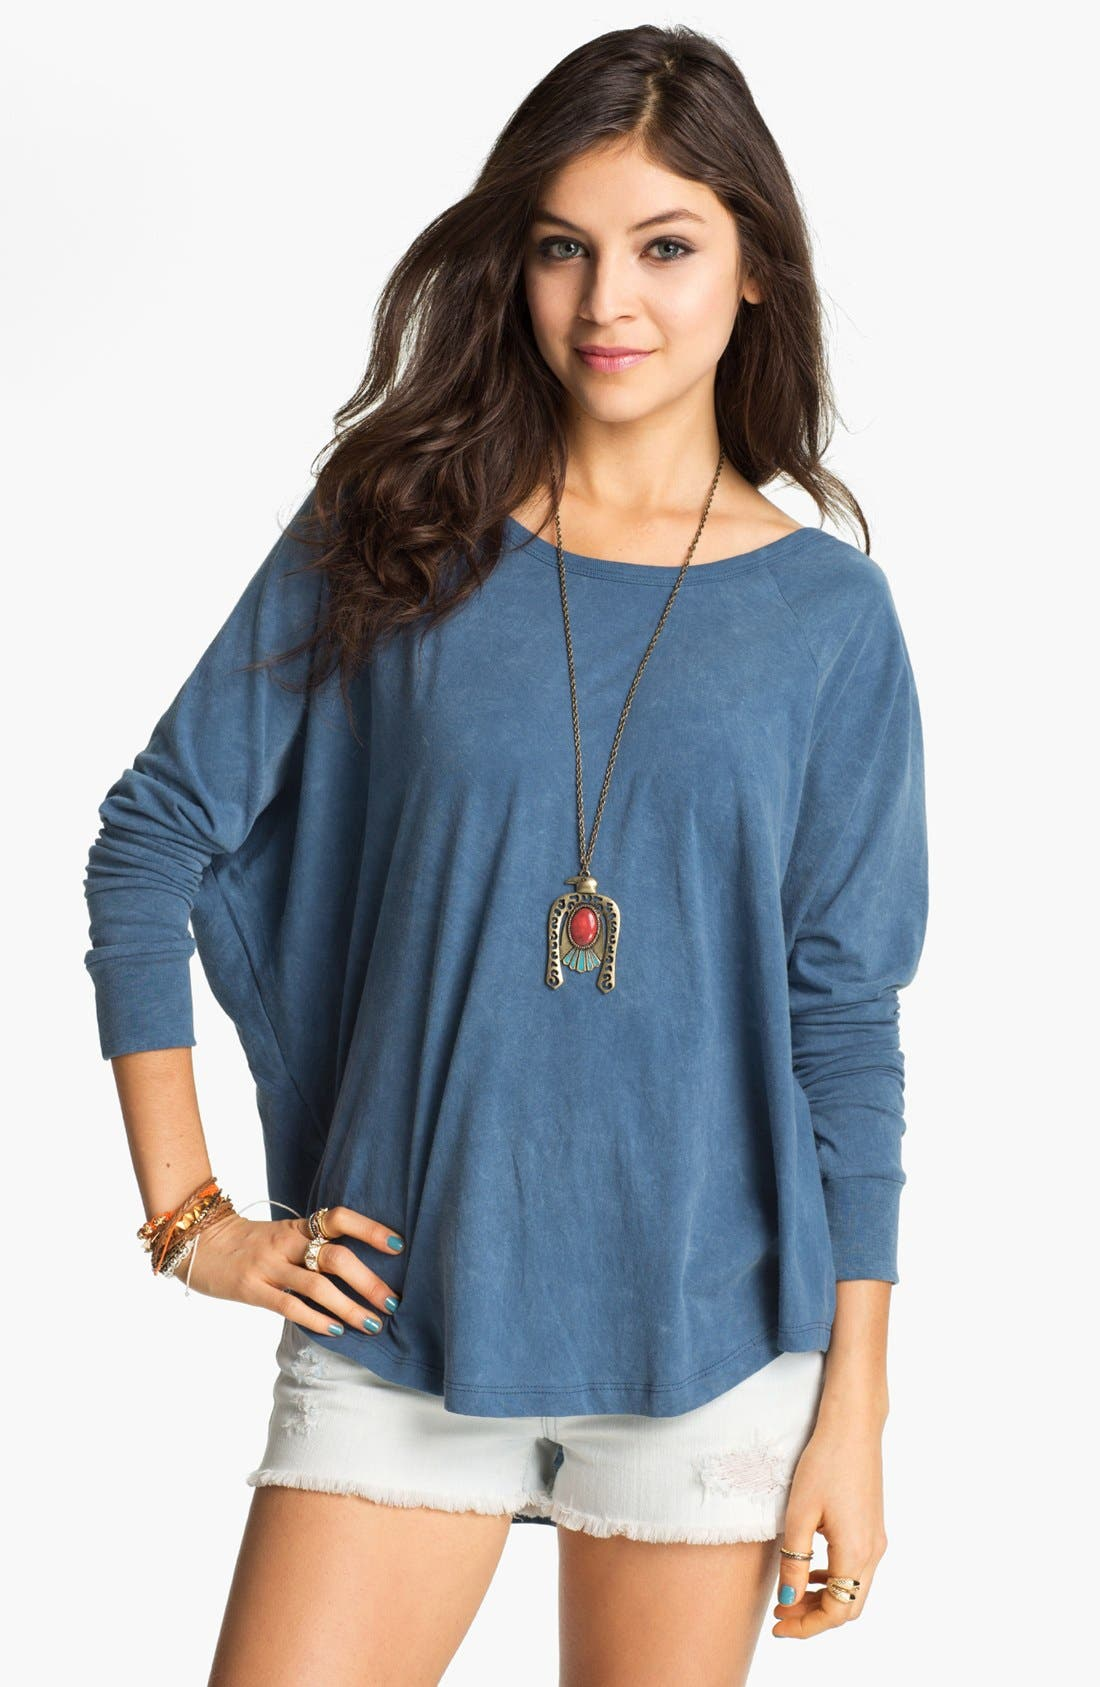 Alternate Image 1 Selected - Project Social T Vintage Wash Batwing Top (Juniors)